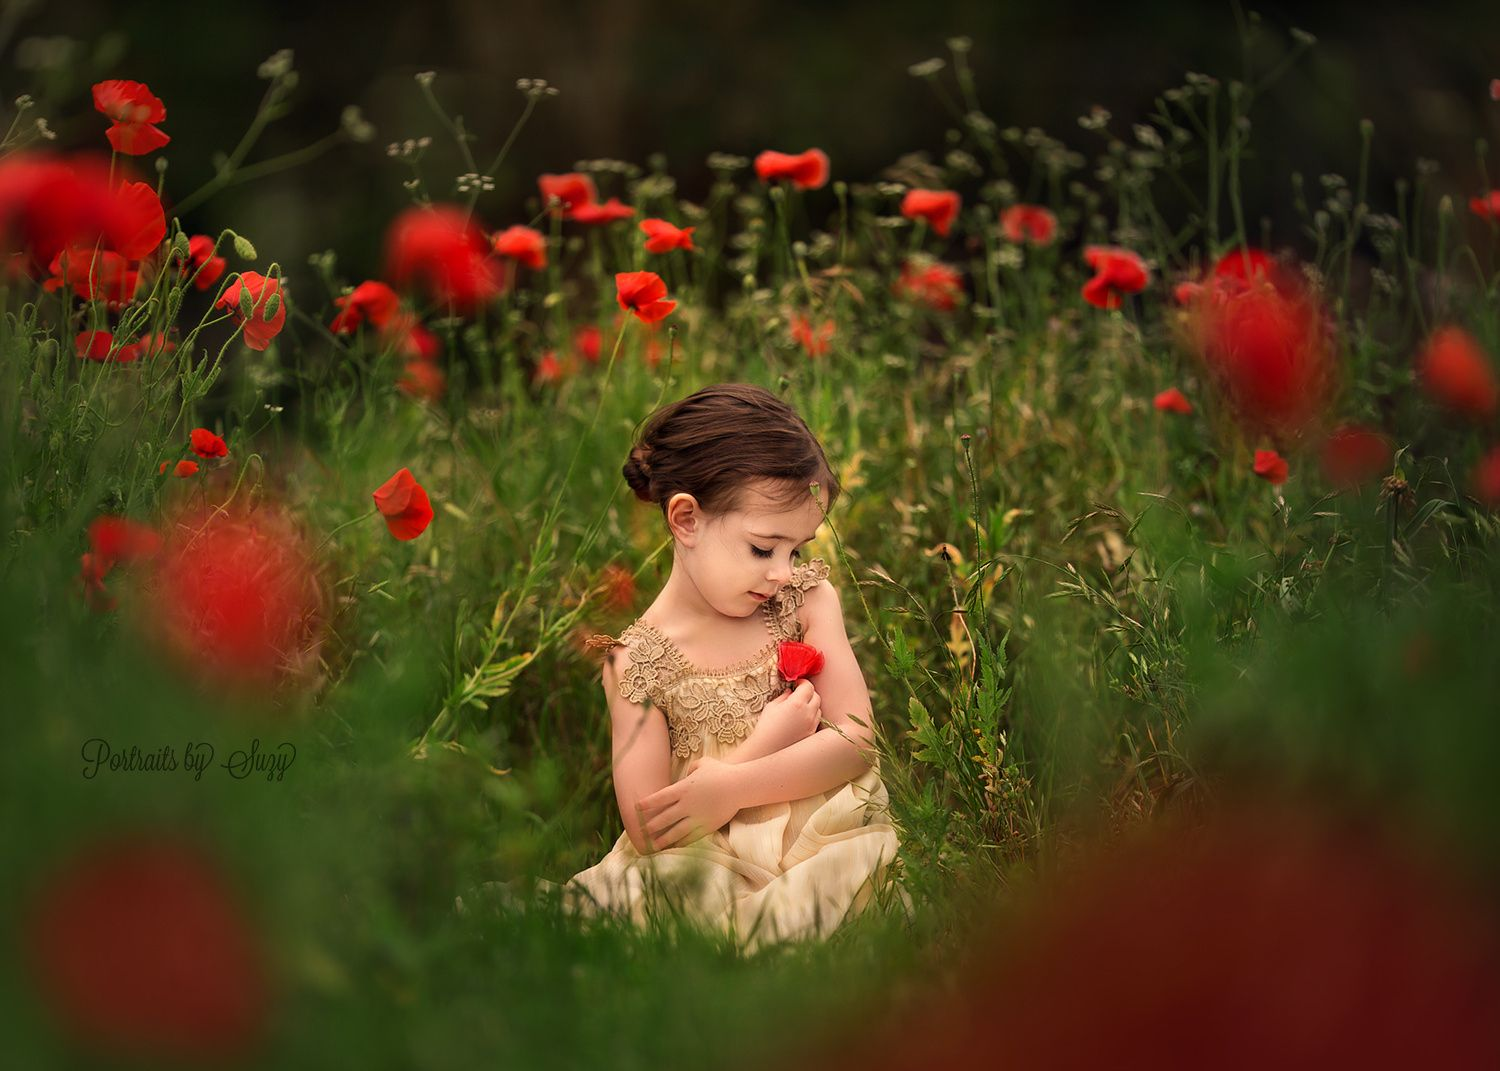 """Poppy Garden - Beautiful Mia in a poppy field. Thank you for liking, commenting and adding to faves! For more please visit my pages here:   <a href=""""http://www.facebook.com/portraitsbysuzy"""">Facebook</a>   <a href=""""http://instagram.com/portraitsbysuzy/"""">Instagram</a>   <a href=""""http://twitter.com/suzyportraits"""">Twitter</a>   <a href=""""http://portraitsbysuzy.com"""">Website</a>   Thank you!"""